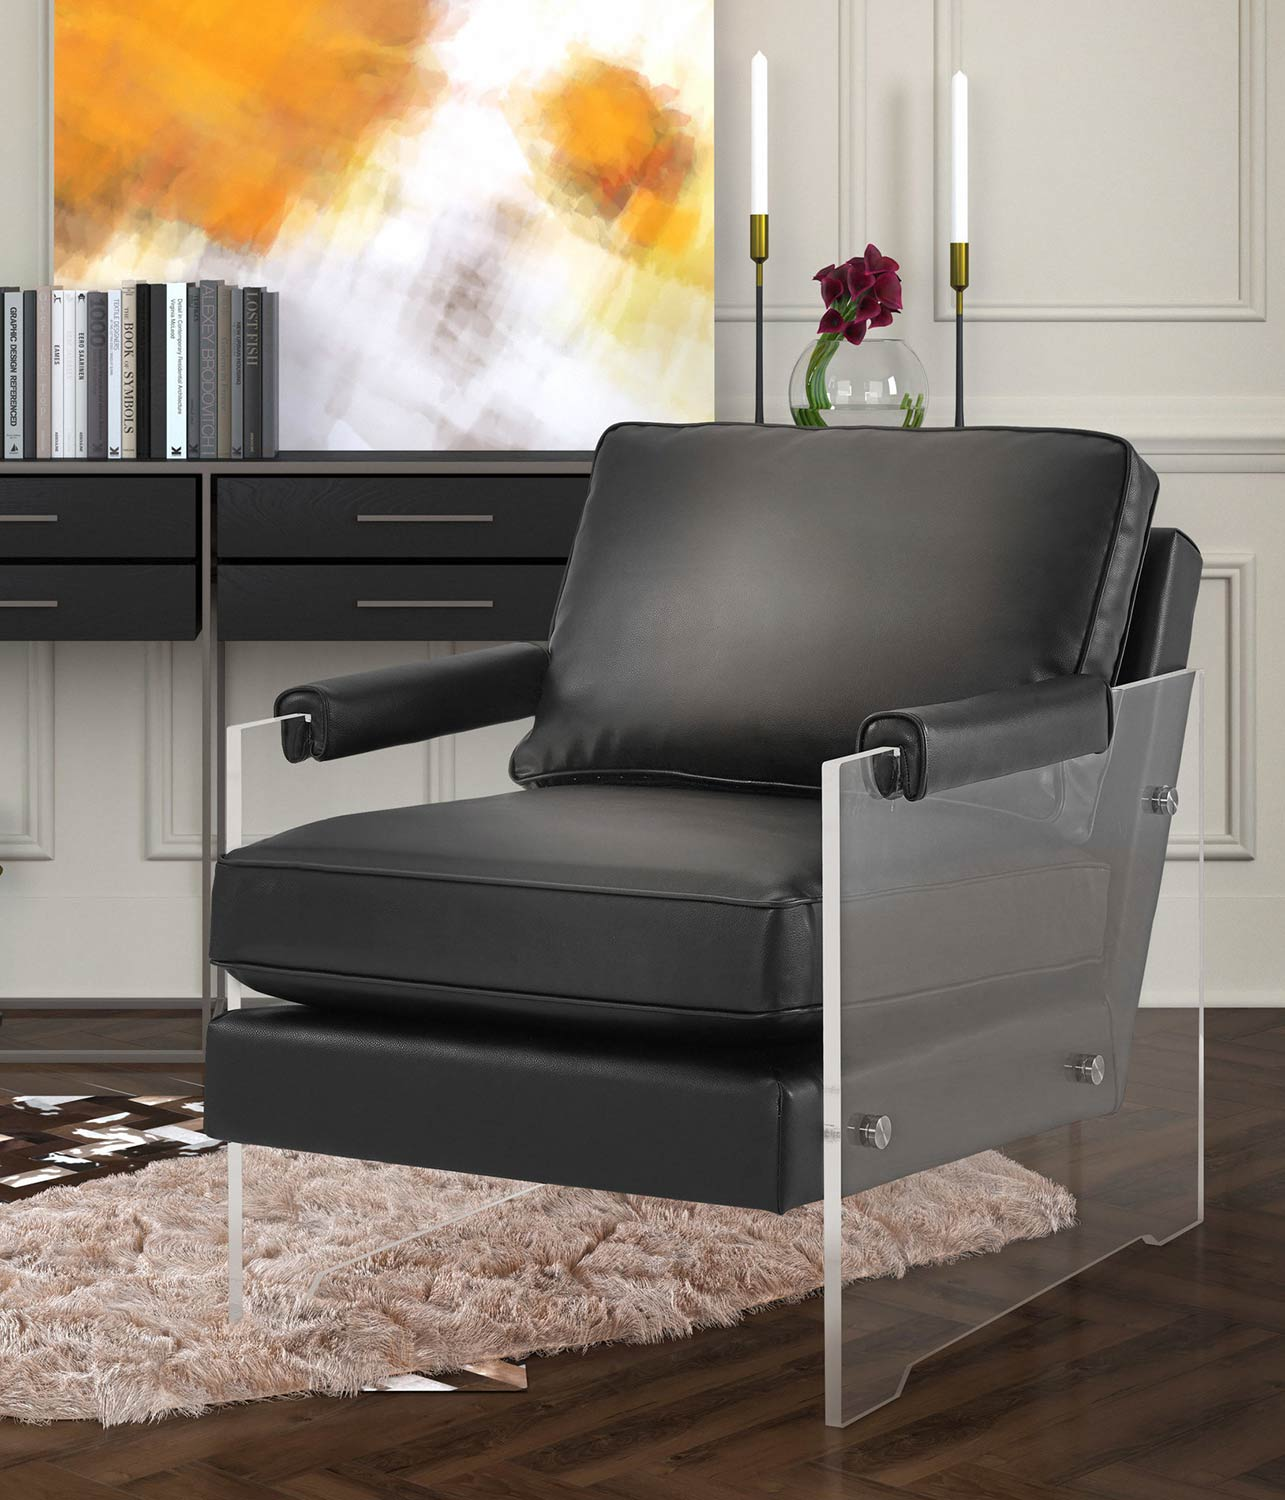 TOV Furniture Serena Eco Leather/Lucite Chair - Black